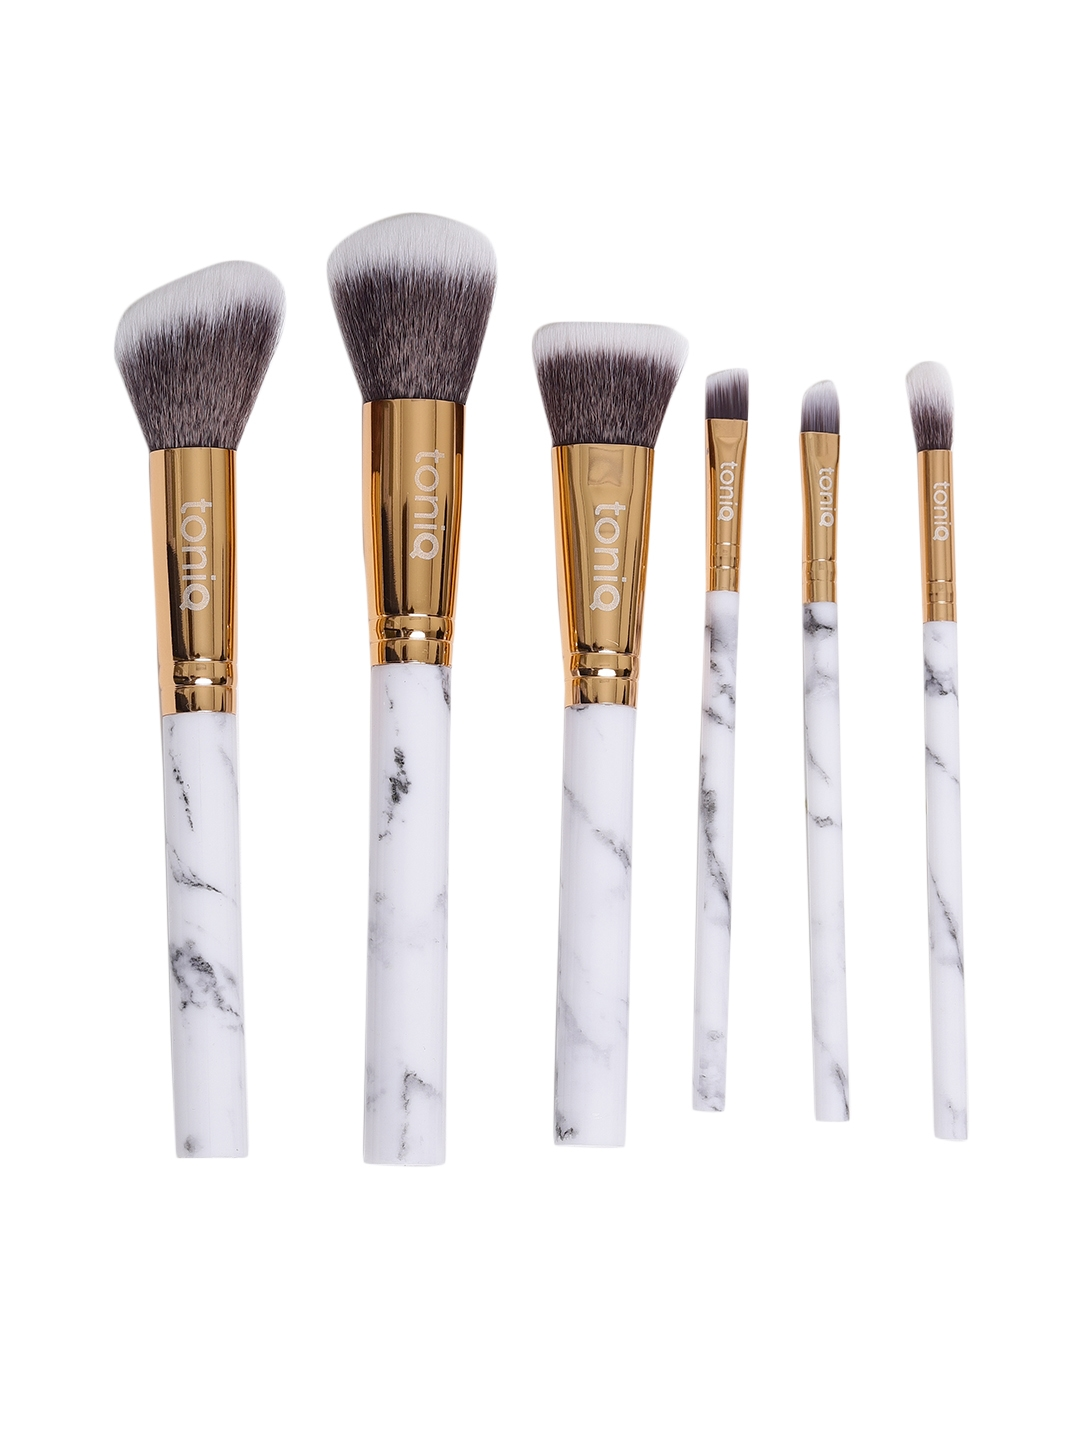 Toniq Beauty Marvelous Marble Collection Set of 6 Makeup Brushes